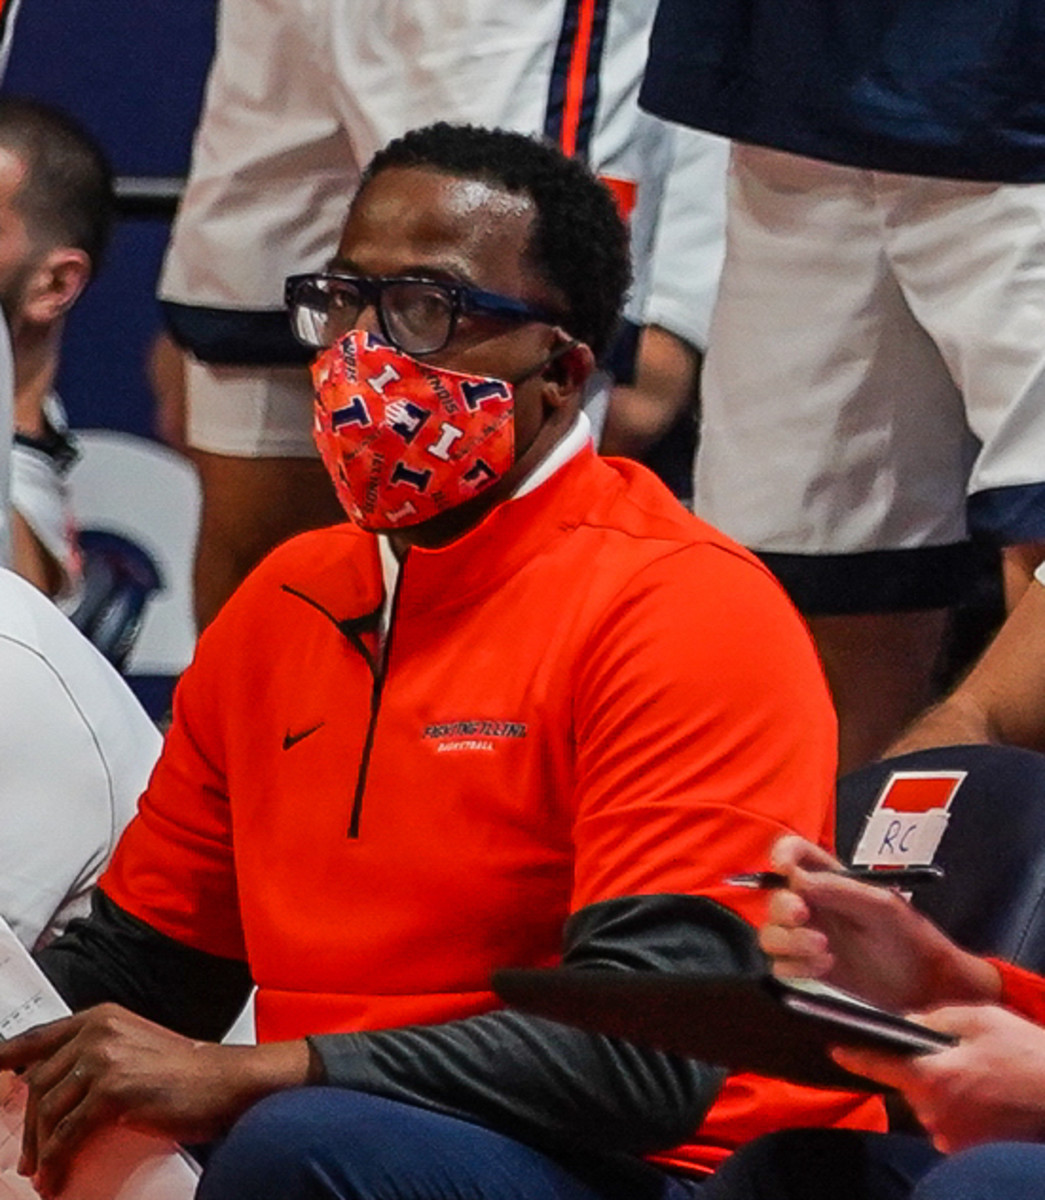 """CBS Sports reporter Matt Norlander cites unnamed sources saying that Illinois assistant coach Ronald """"Chin"""" Coleman is also likely to be an assistant coach on Calipari's staff for the upcoming 2021-22 season. However, Illini Now/SI has learned that move isn't officially done and Coleman is still evaluating several options."""